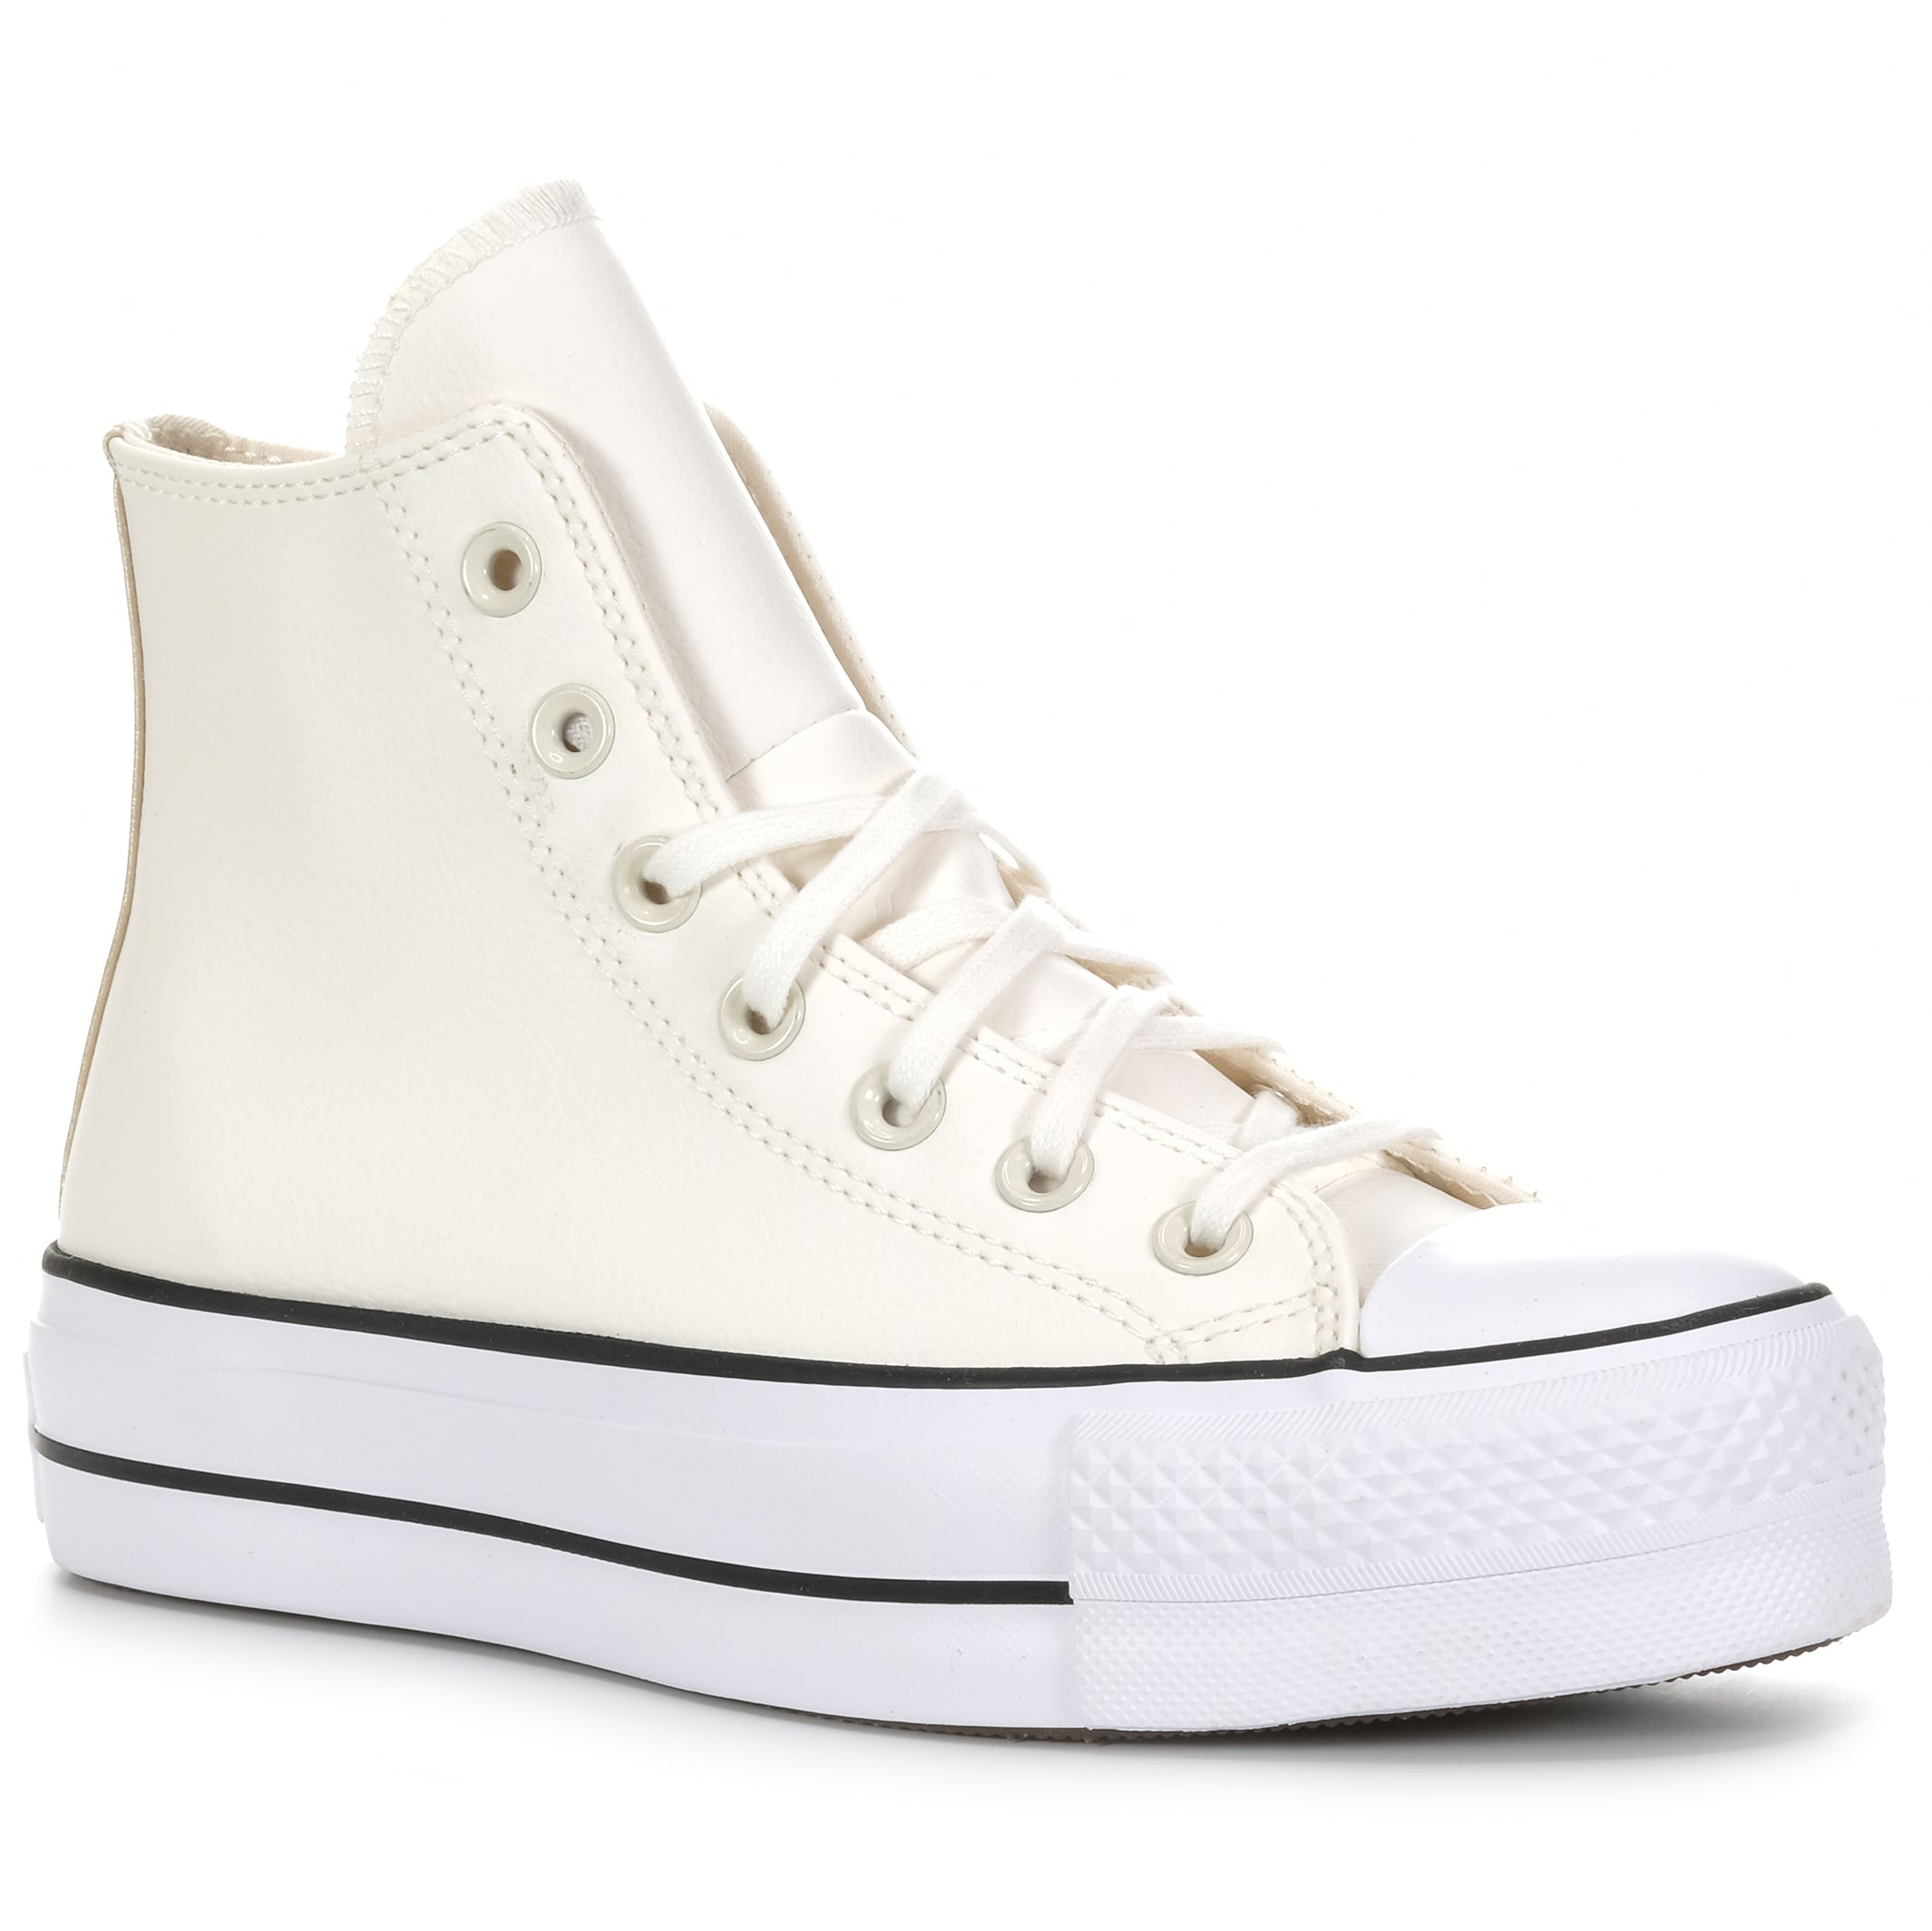 Converse CT All Star Life Leather women's sneakers